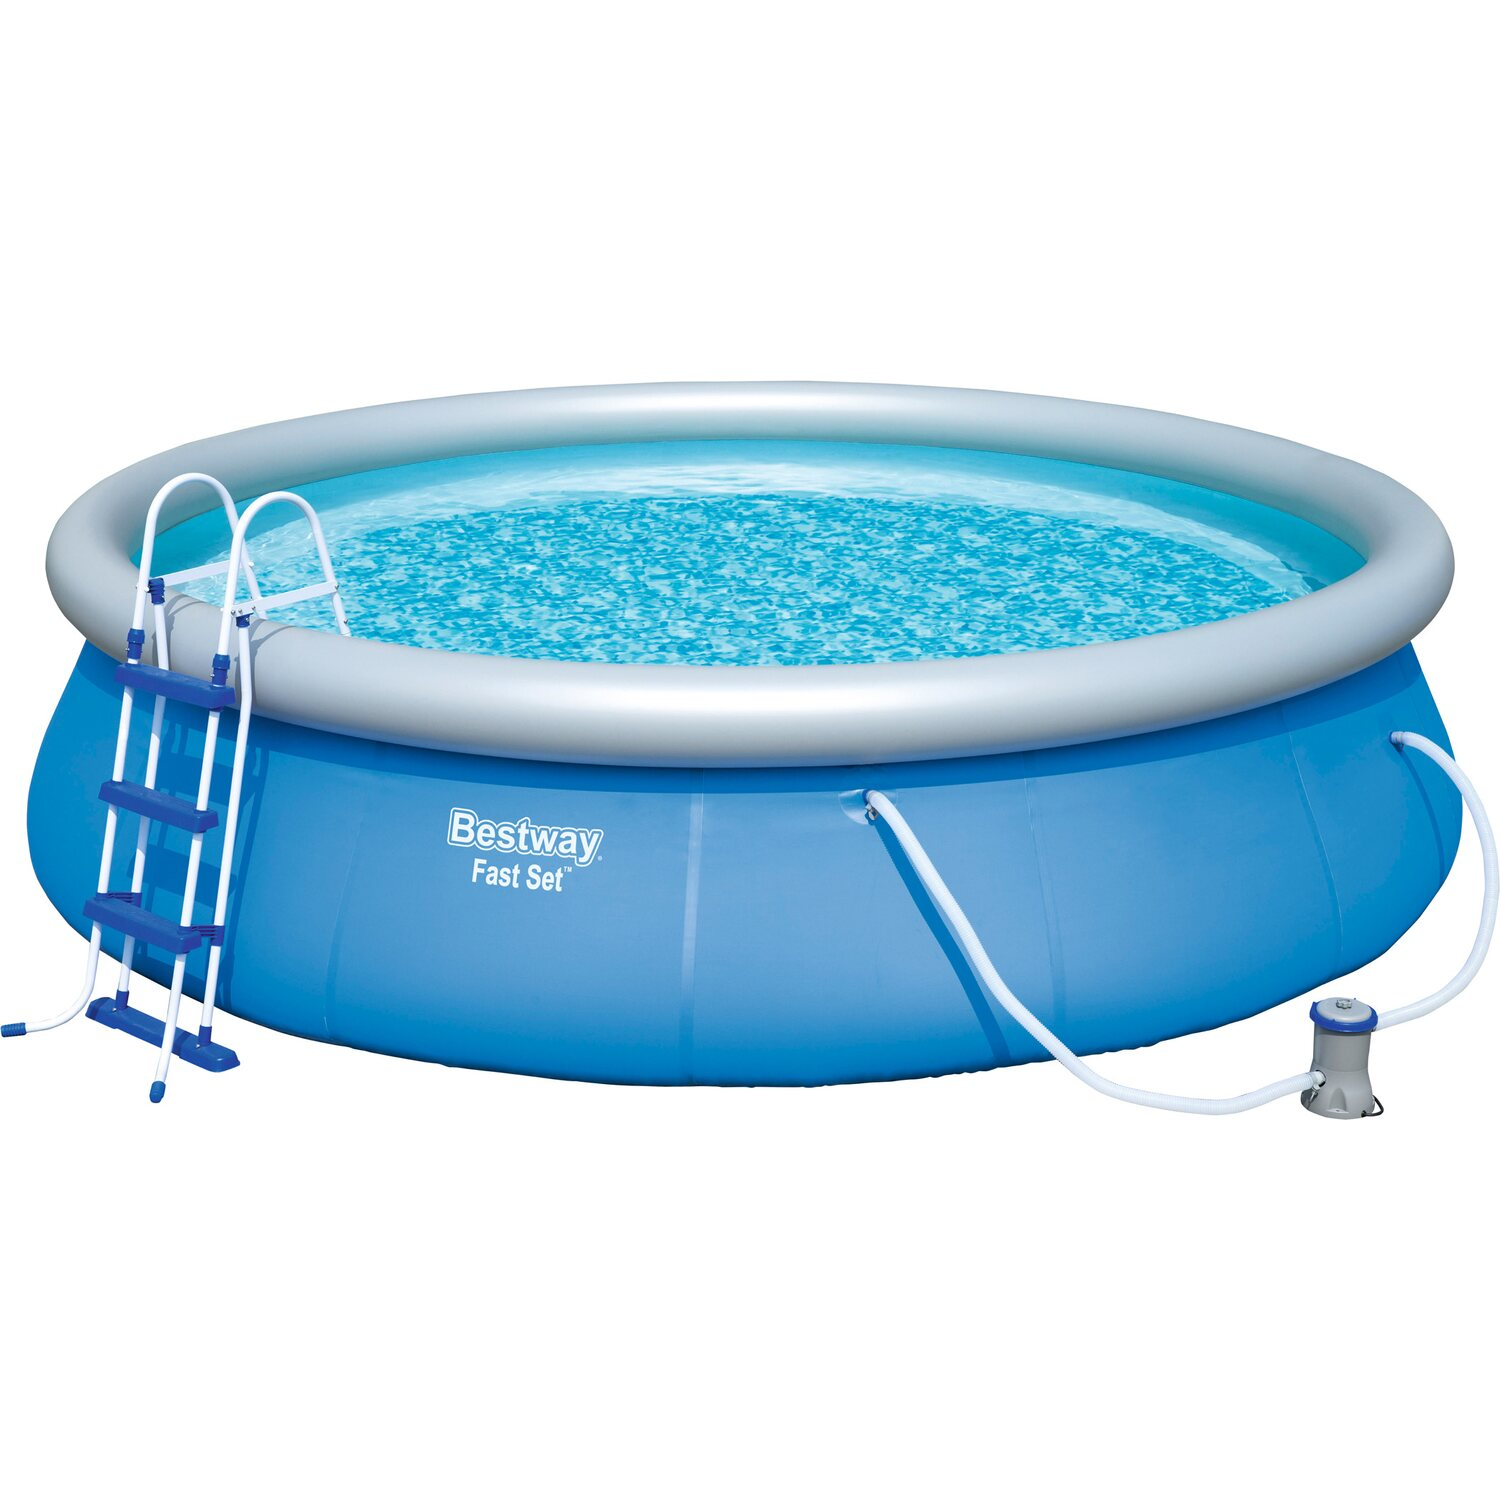 Bestway fast set pool kaufen bei obi for Obi sandfilteranlage pool